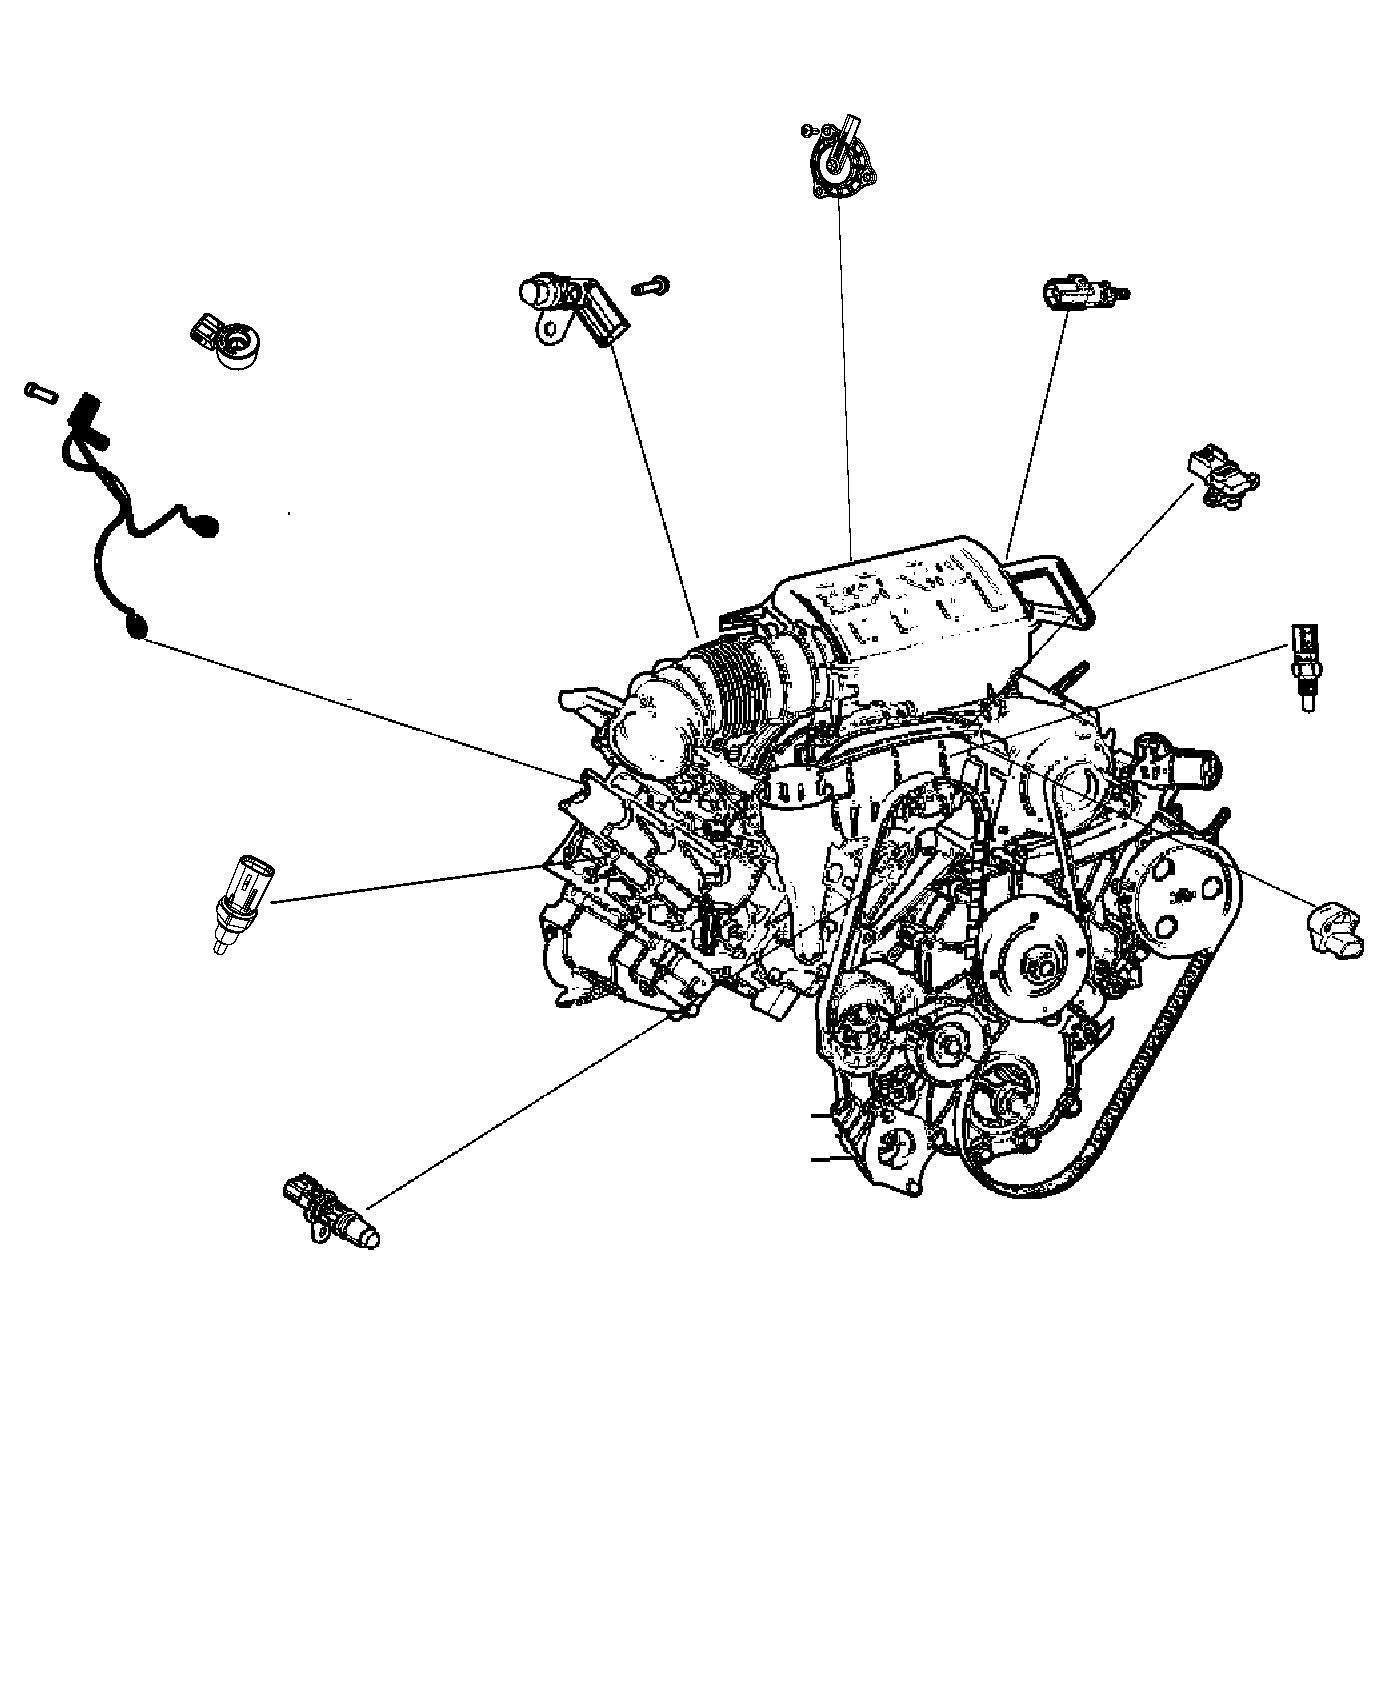 2014 Jeep Grand Cherokee Wiring  Used For  Knock  Oil Pressure  And Temperature Sensor  After 07